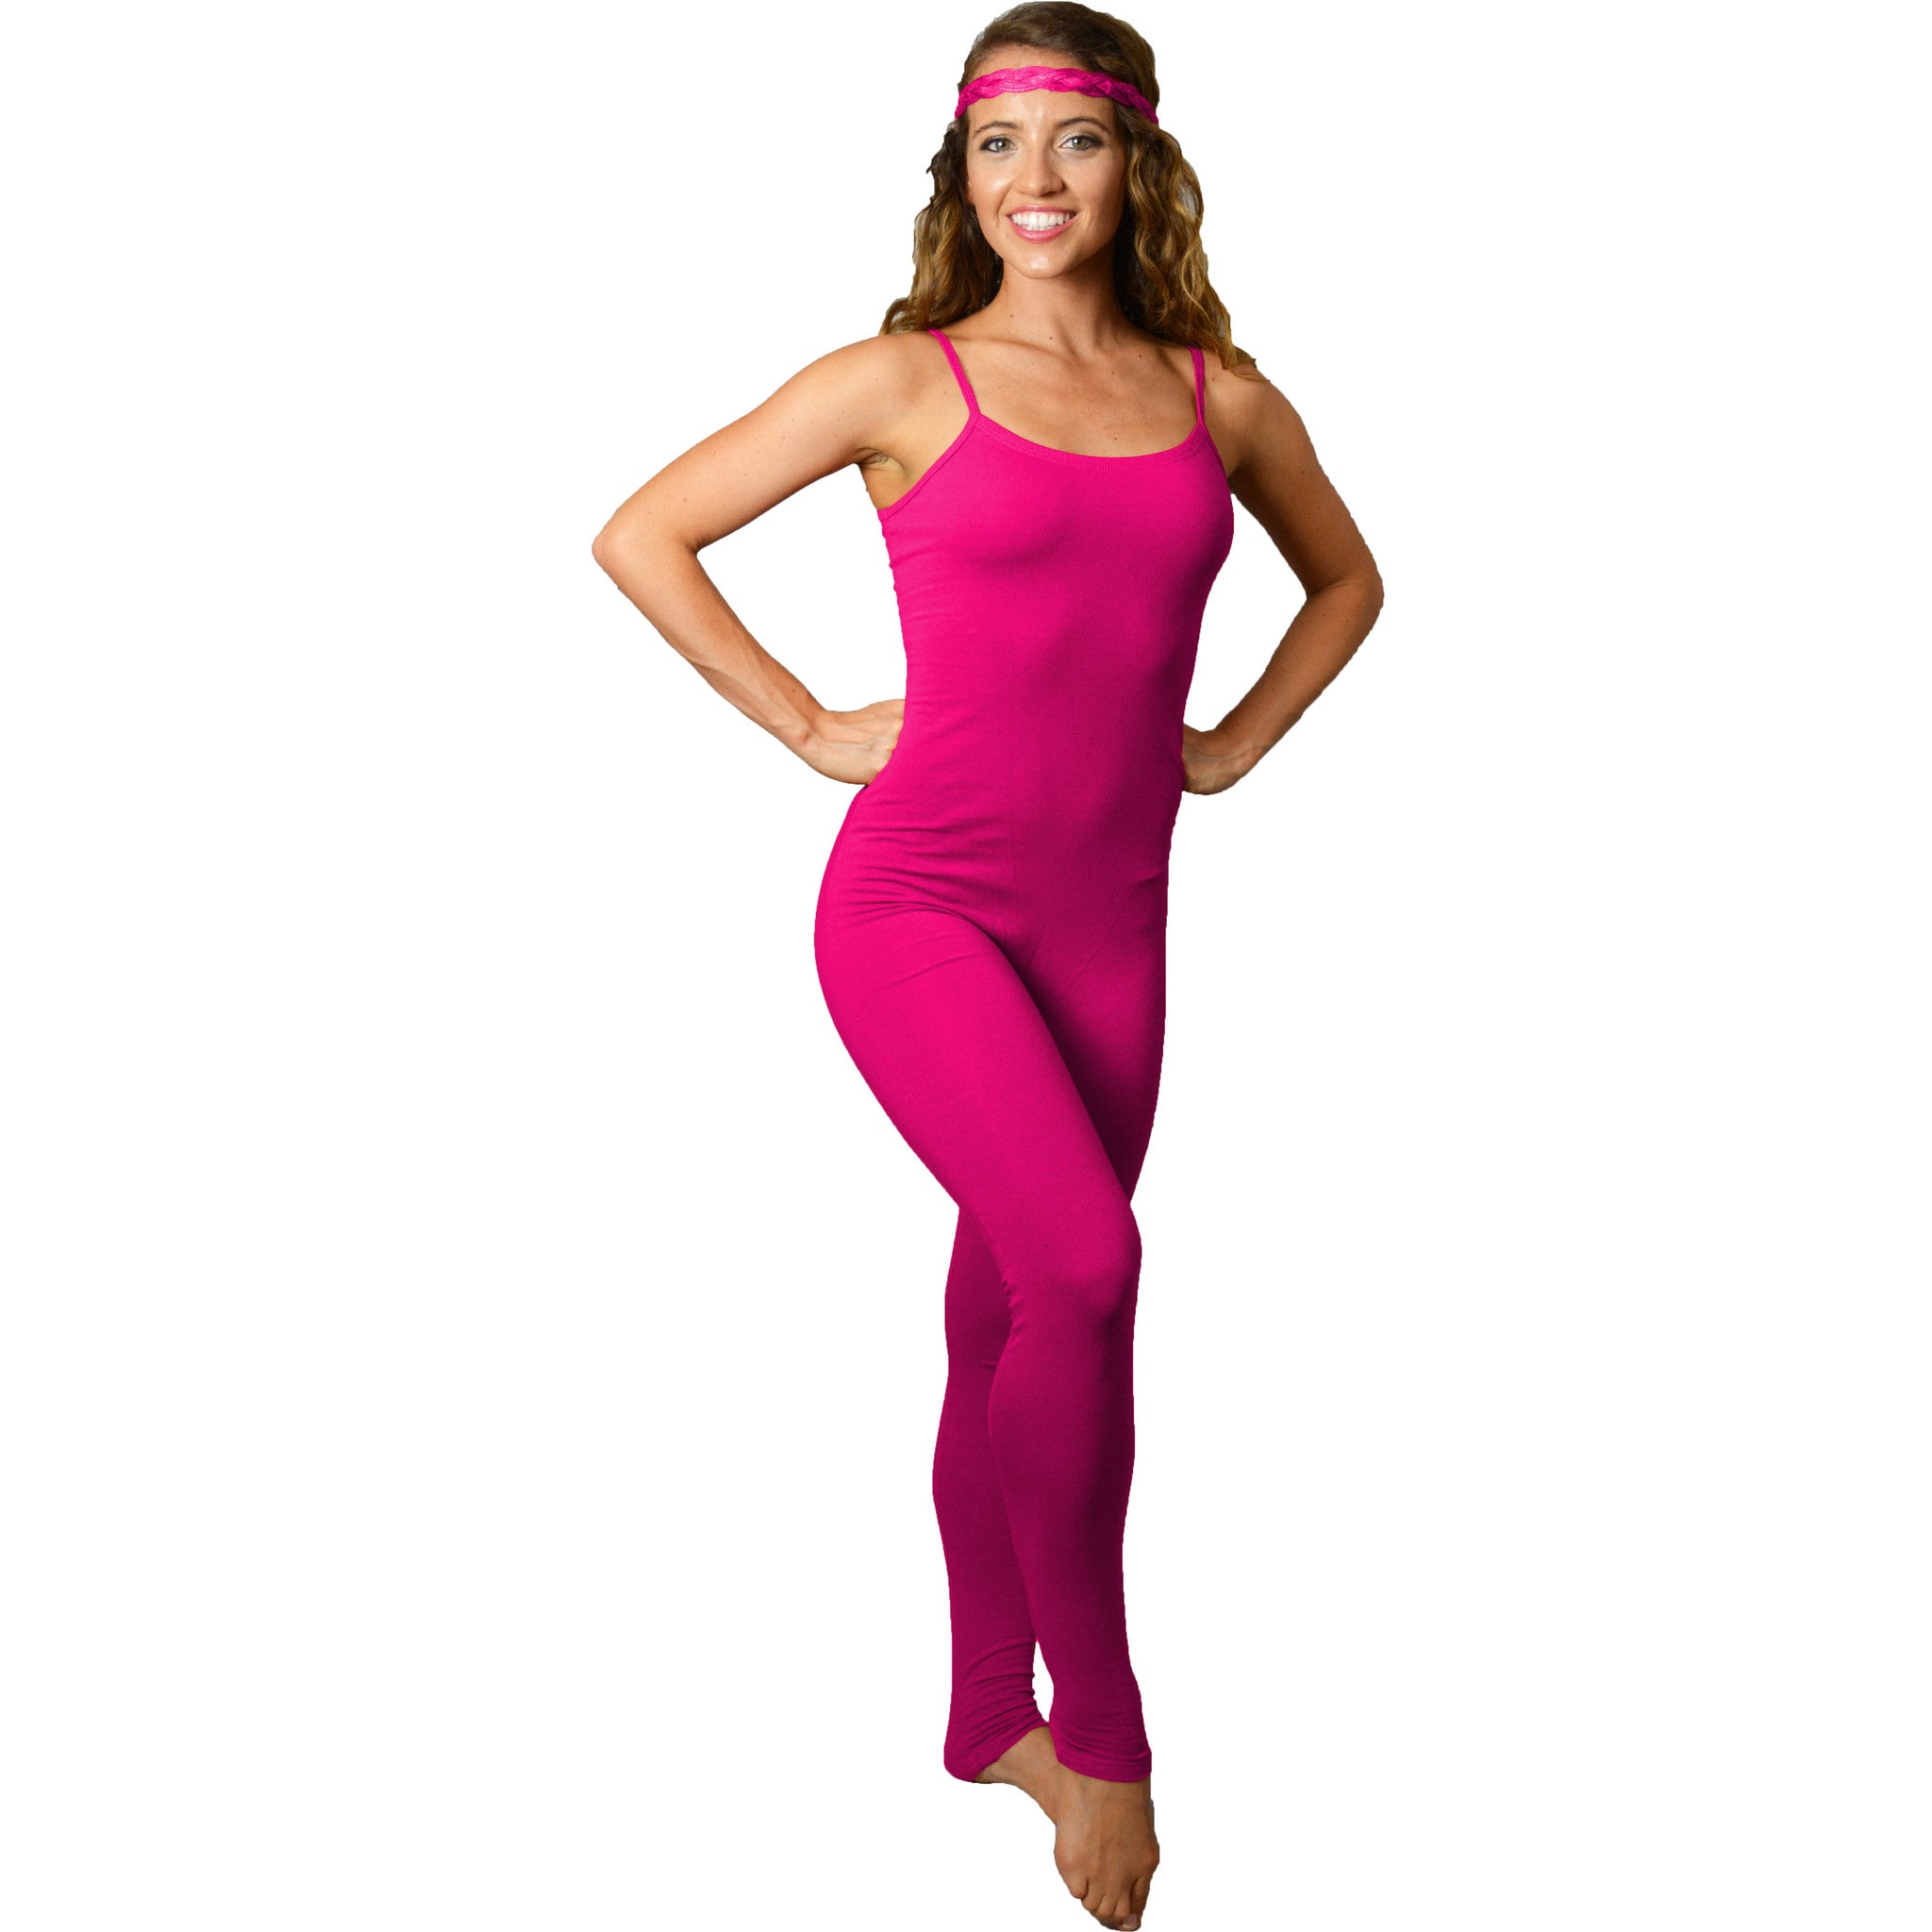 Women's Ankle Length Camisole Catsuit Unitard